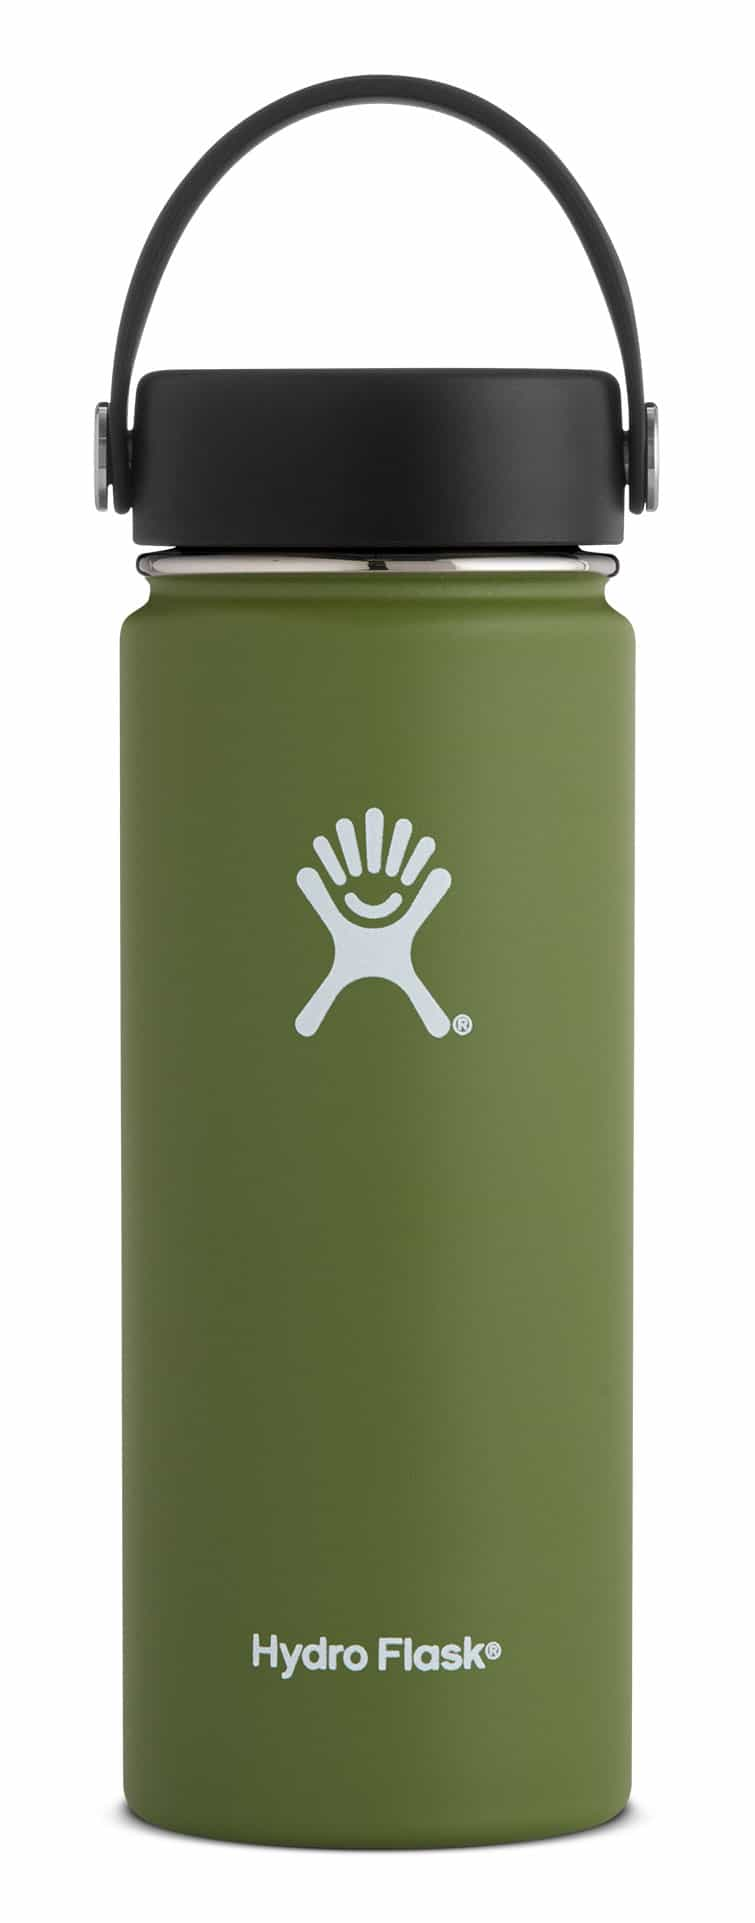 Hydro Flask-Hydro Flask 18oz Wide Mouth